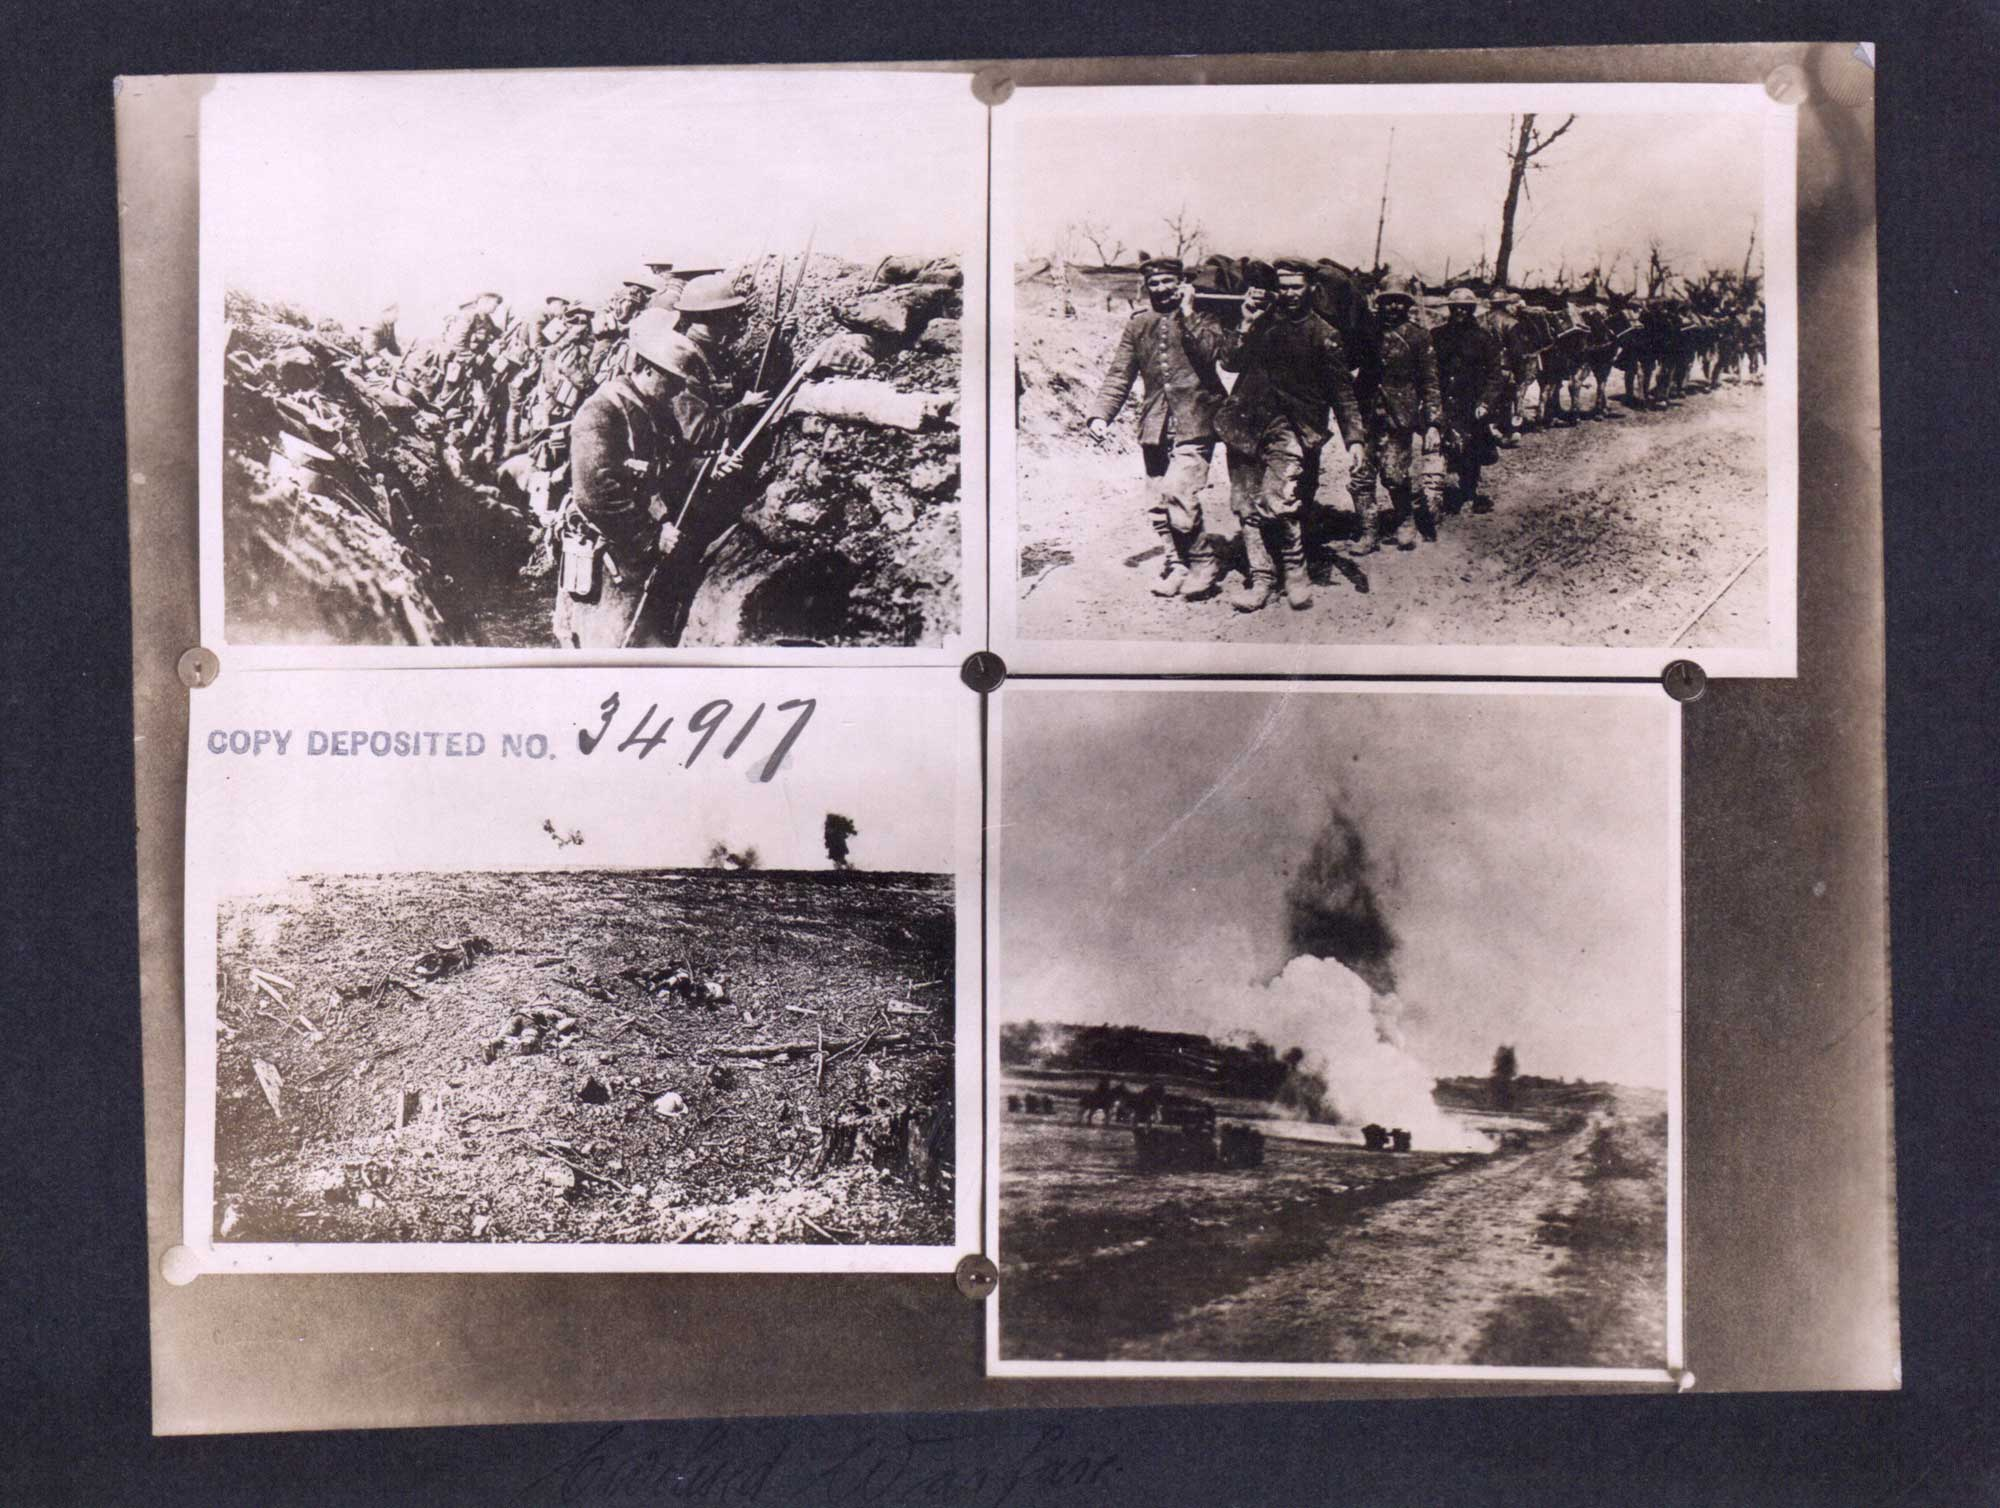 Photographs taken by Canadian soldiers at the Western Front in 1918.